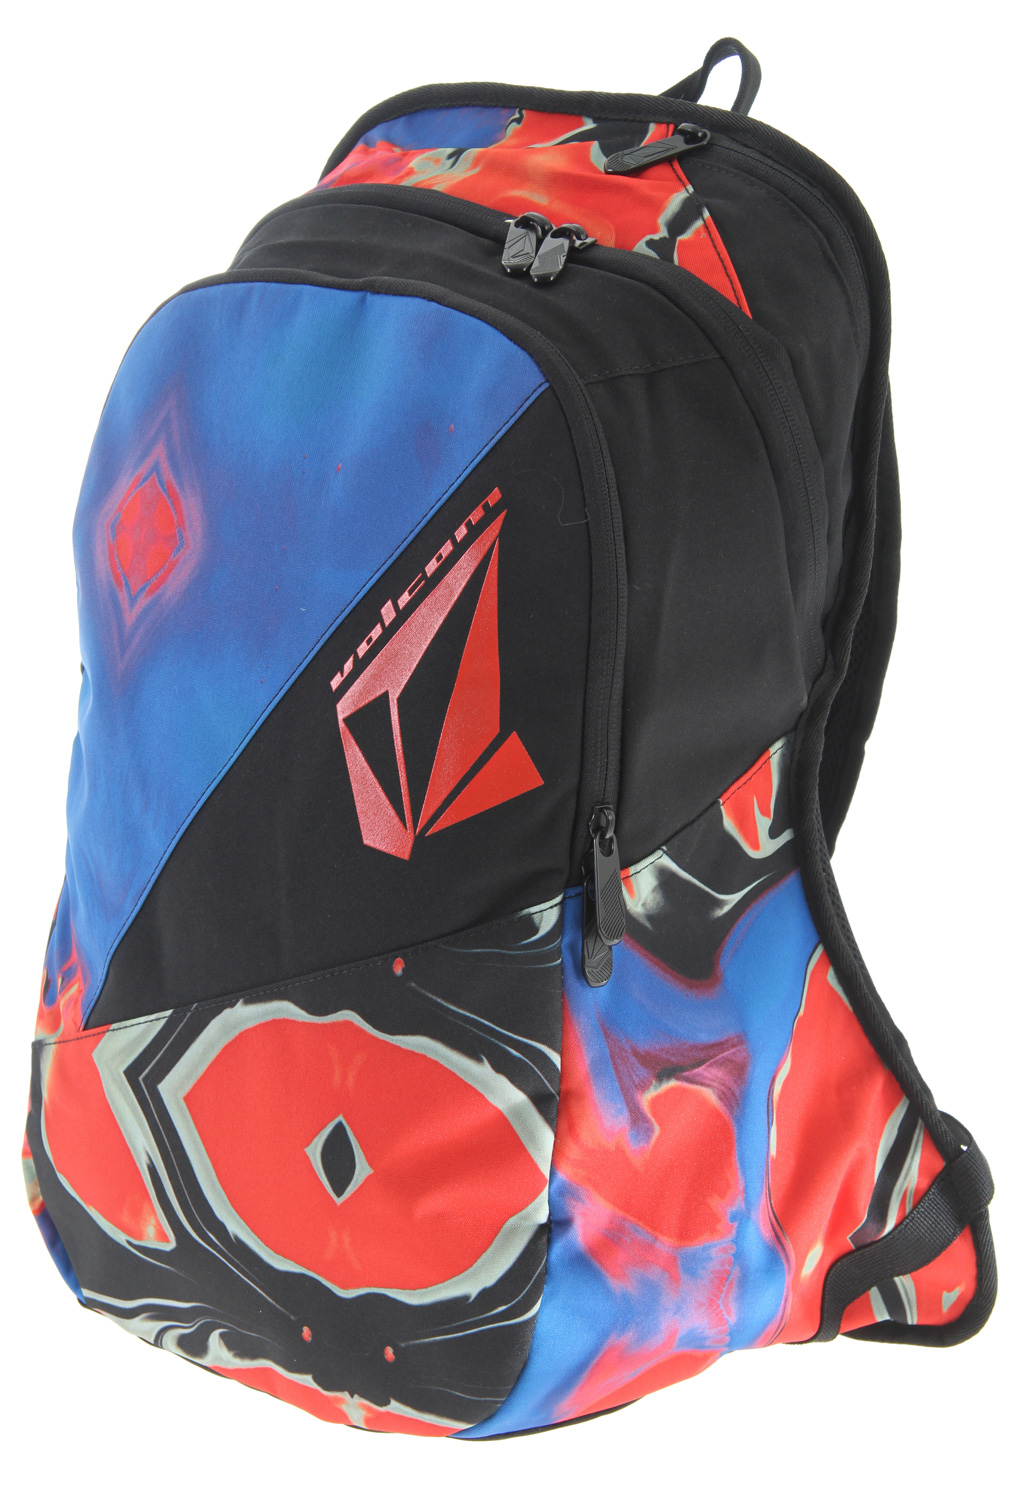 "Surf Key Features of the Volcom Archetype Backpack: 2 Compartment backpack with volcom print artwork. dimension:18"" h x 12""w x 5 3/8"" d (45.5Cm h x 30.5Cm w x 13.5Cm d) volume: 1220 in (20 liters) weight: .9Lb (.41Kg) 100% Polyester - $27.95"